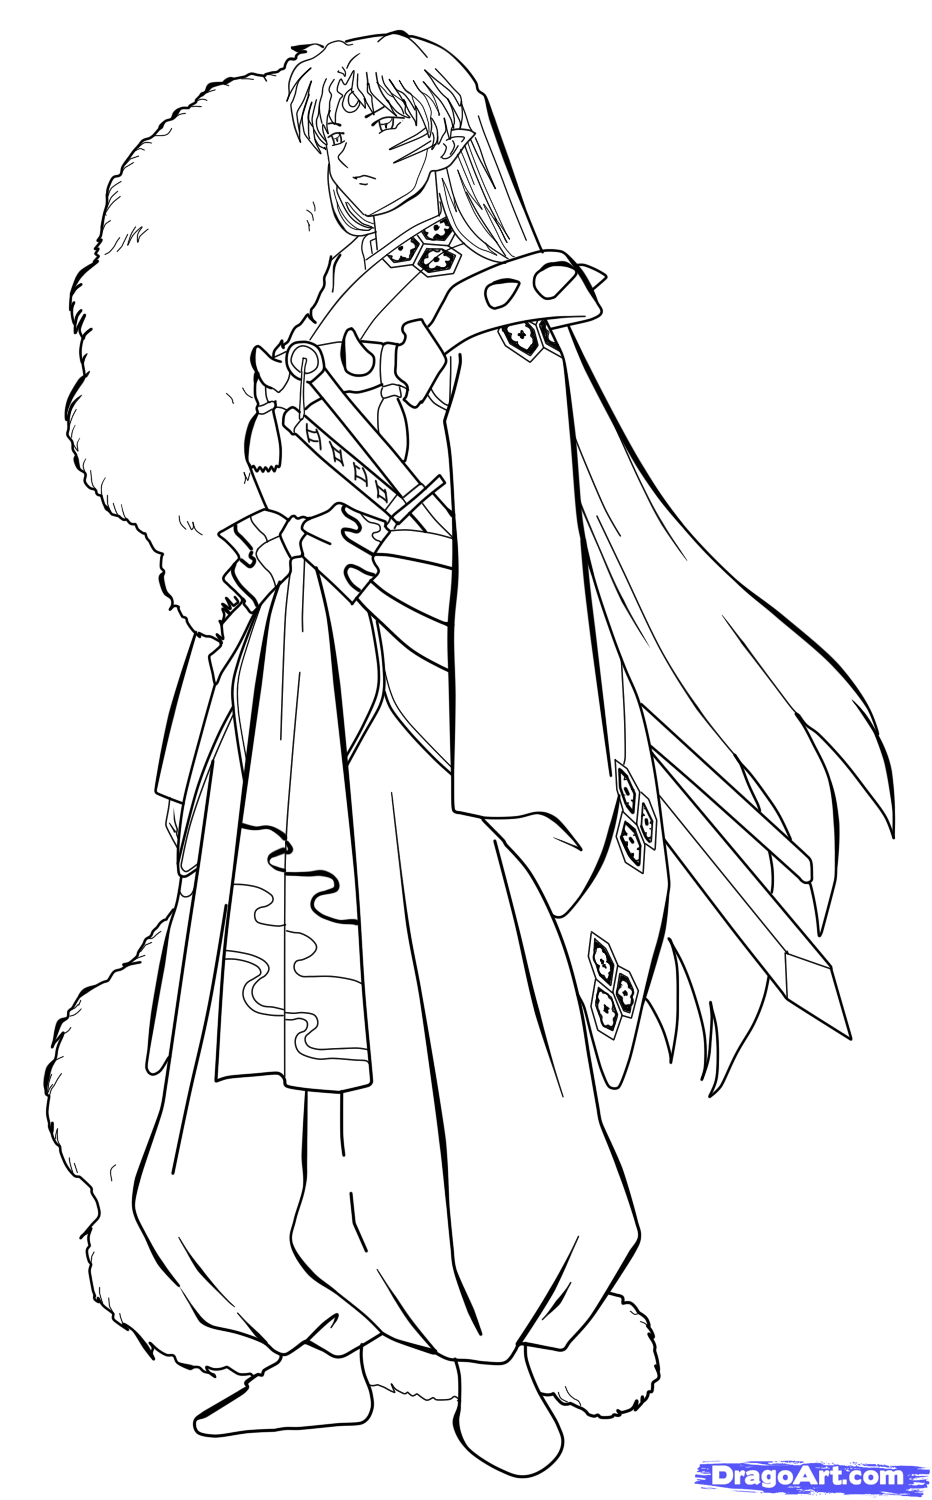 How To Sketch Sesshomaru Inuyasha Sesshomaru Step 8 1 000000142399 5 Png 932 1500 Anime Character Drawing Anime Boy Sketch Cute Coloring Pages